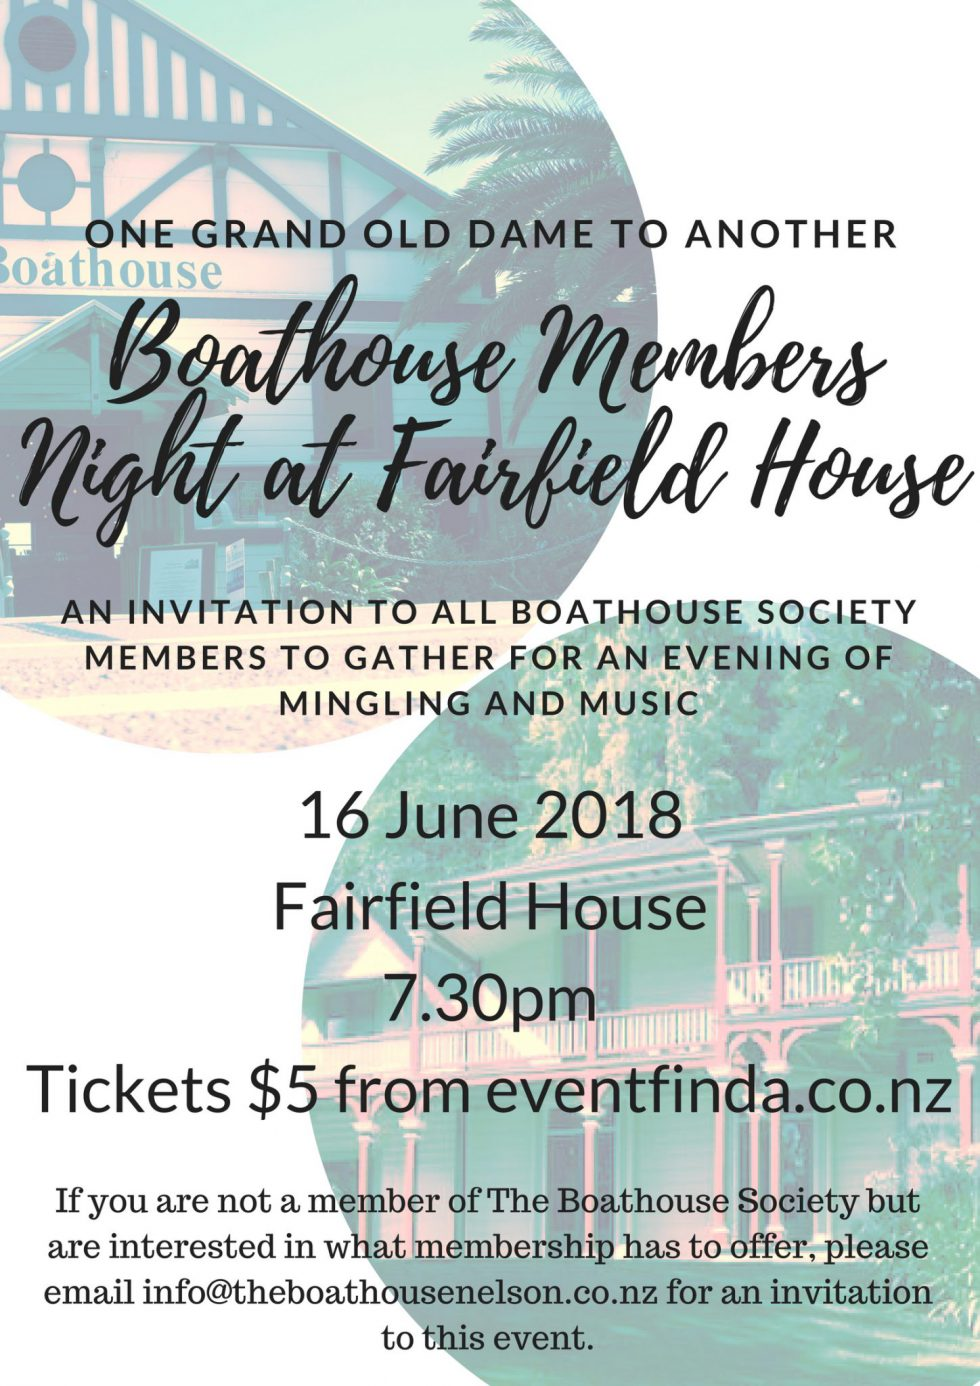 Mingling And Music At Fairfield House With The Boathouse 🗓